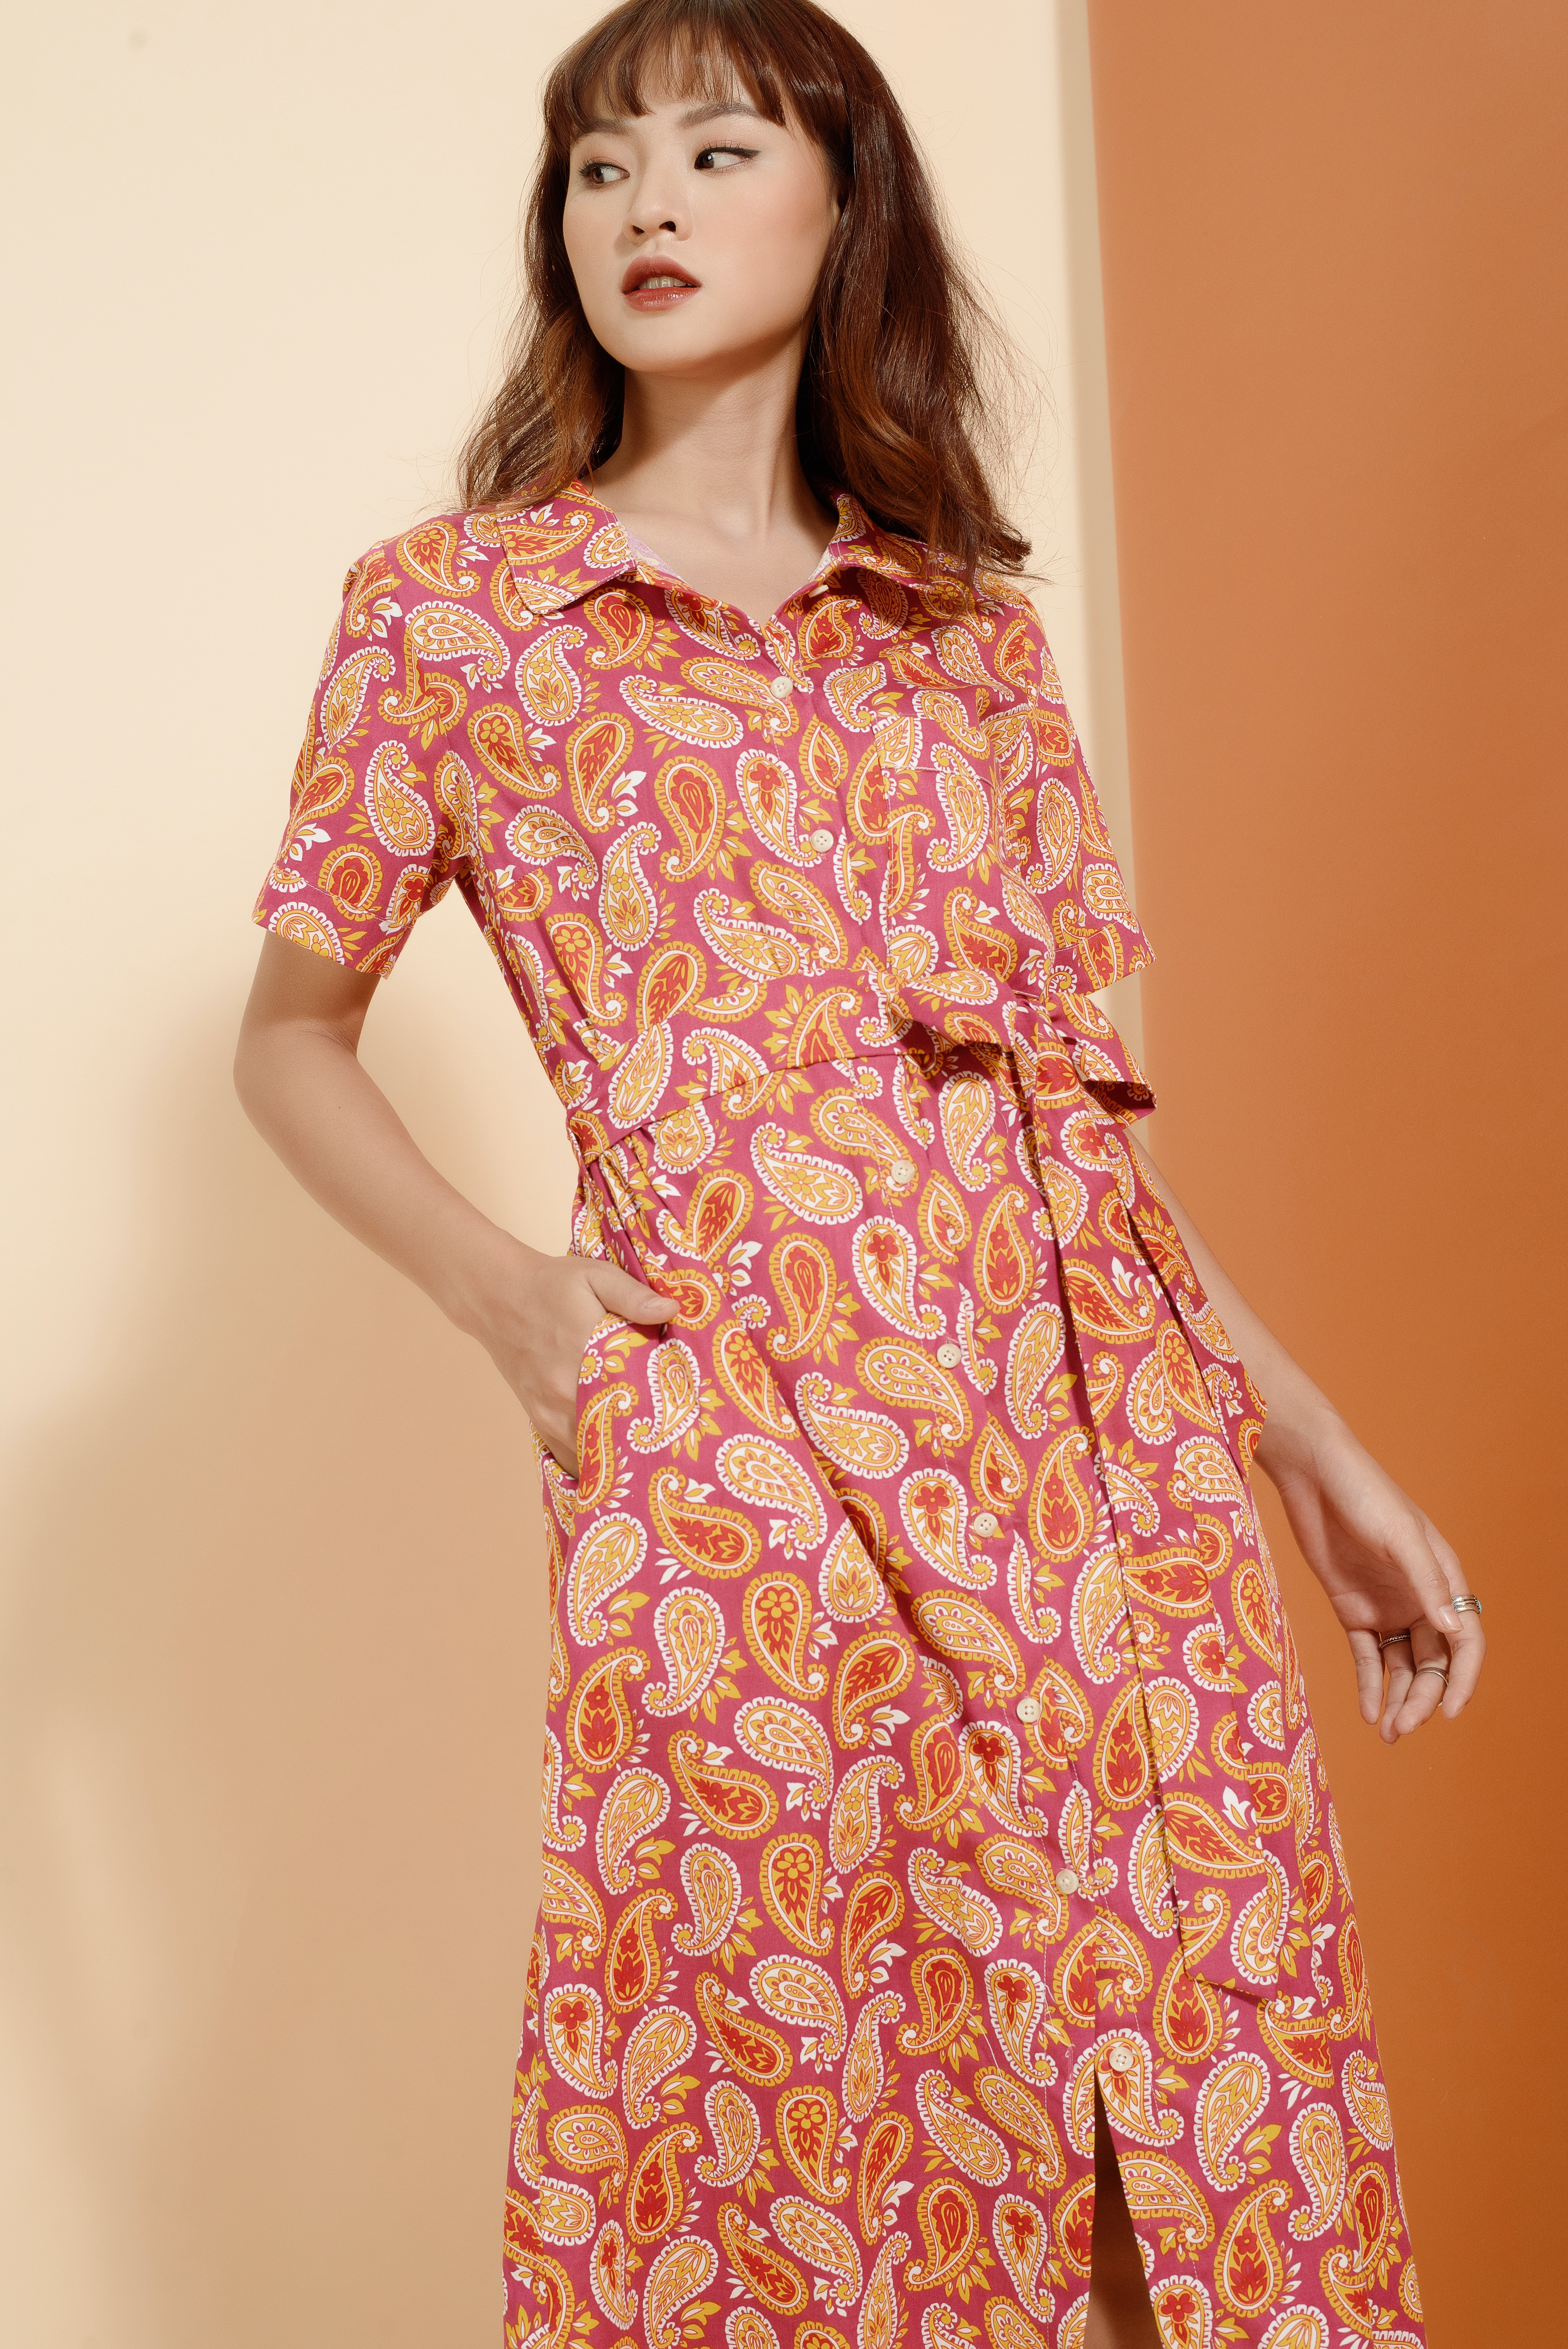 women's pink and white floral sleeveless dress